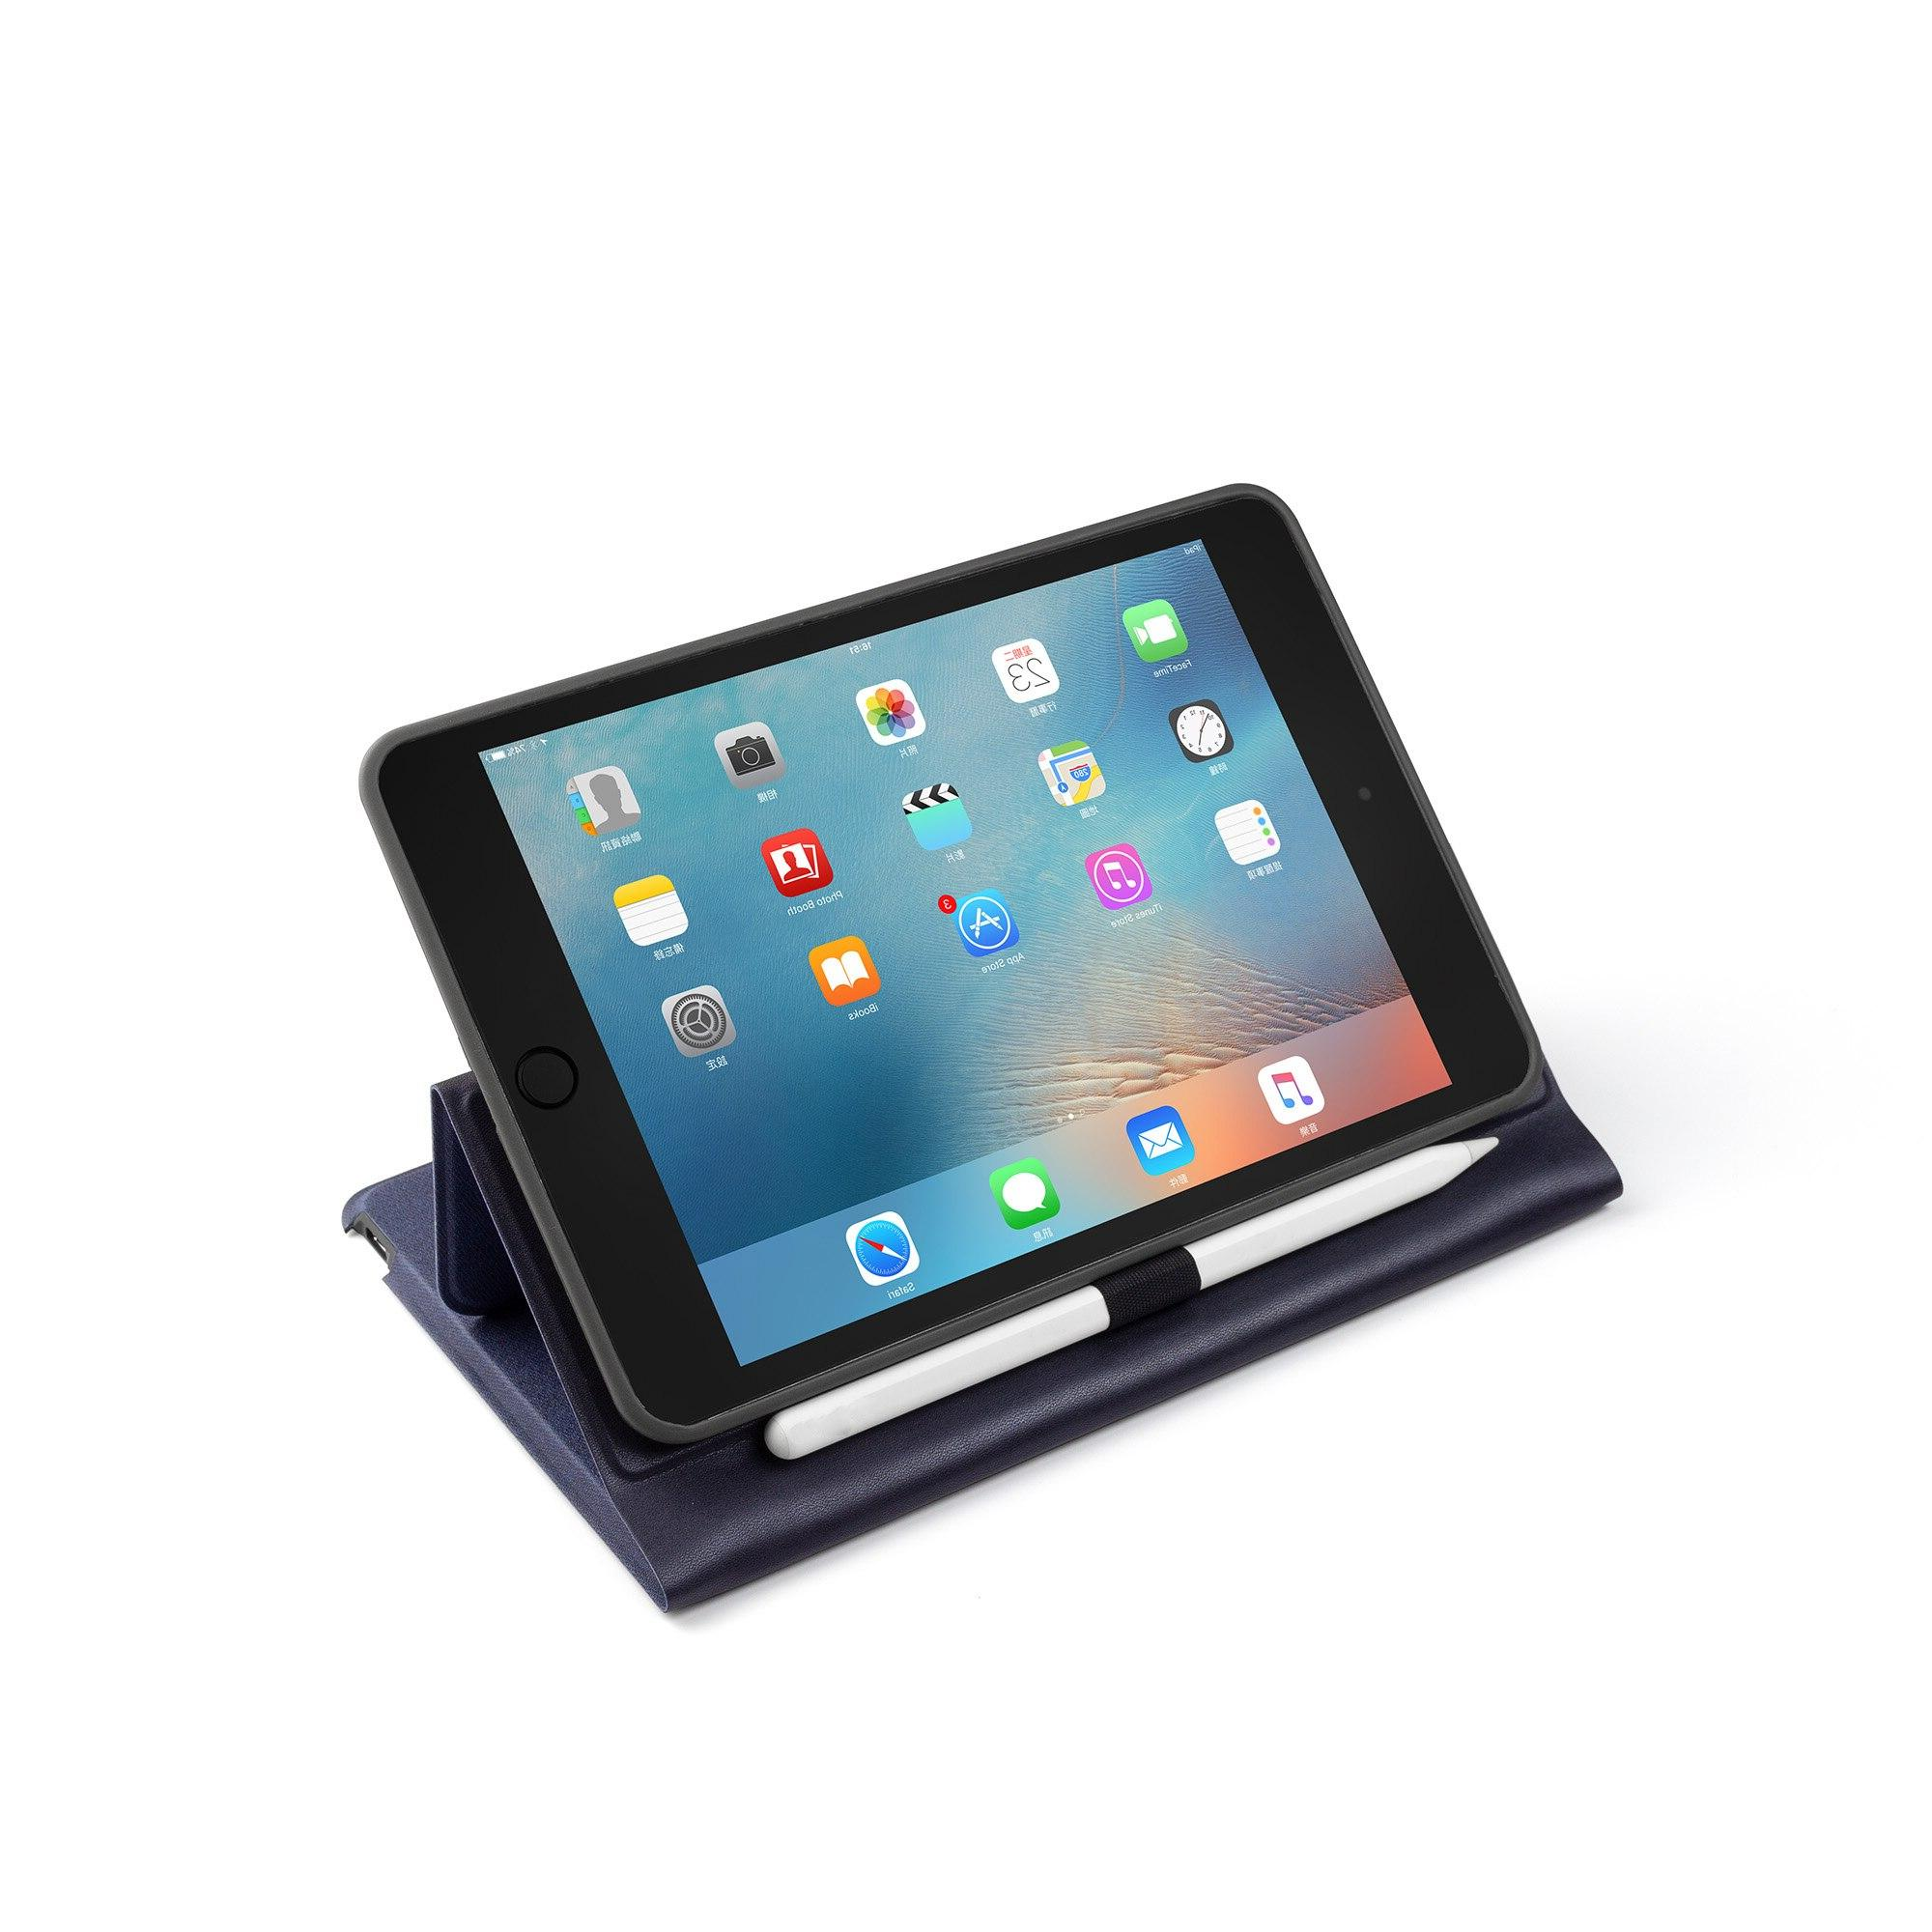 Wireless Bluetooth <font><b>Keyboard</b></font> <font><b>Case</b></font> for iPad 4 5 Backlight Holder